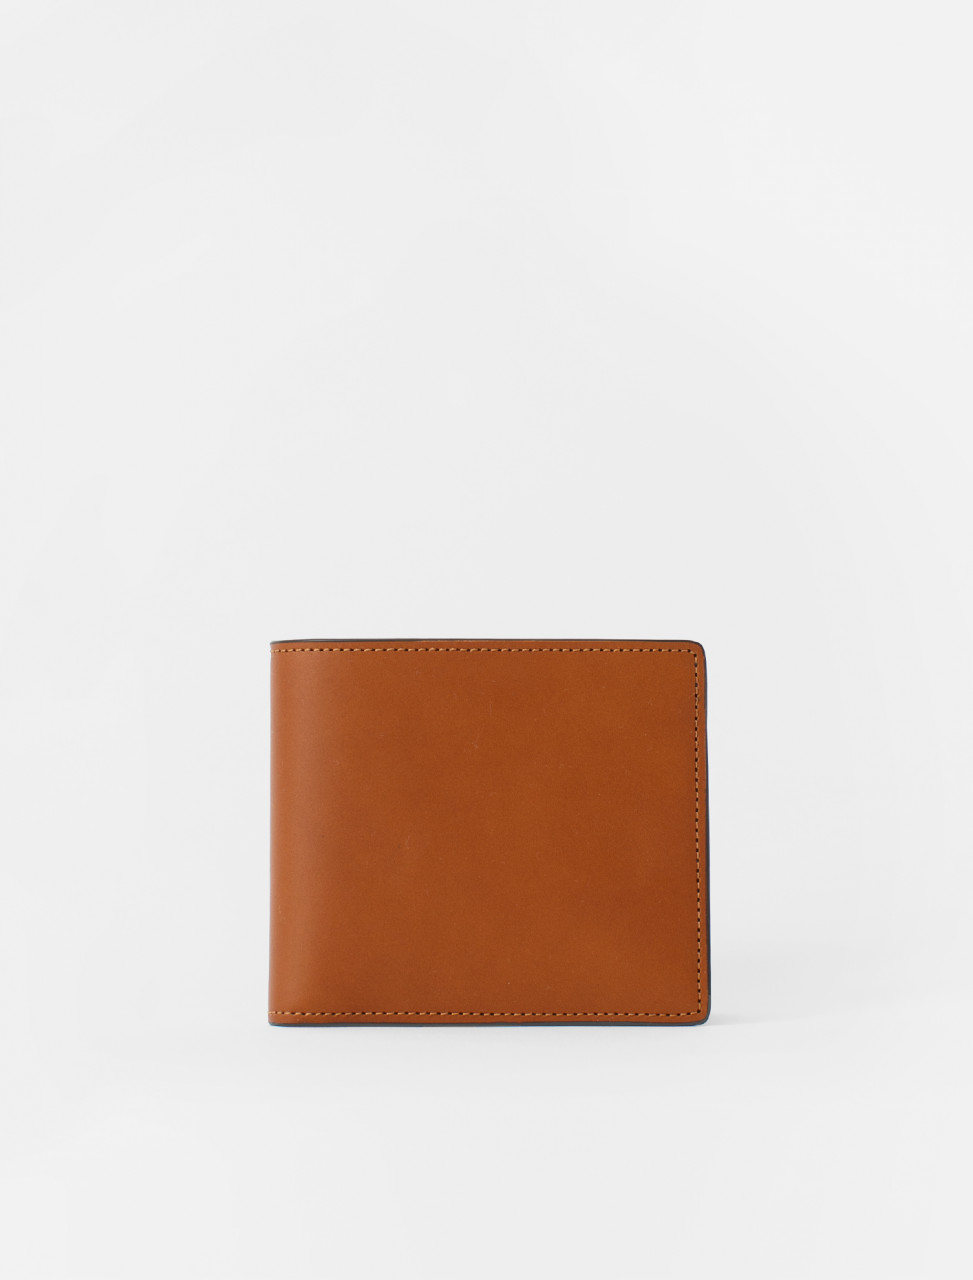 Bi-Fold Wallet in Cognac